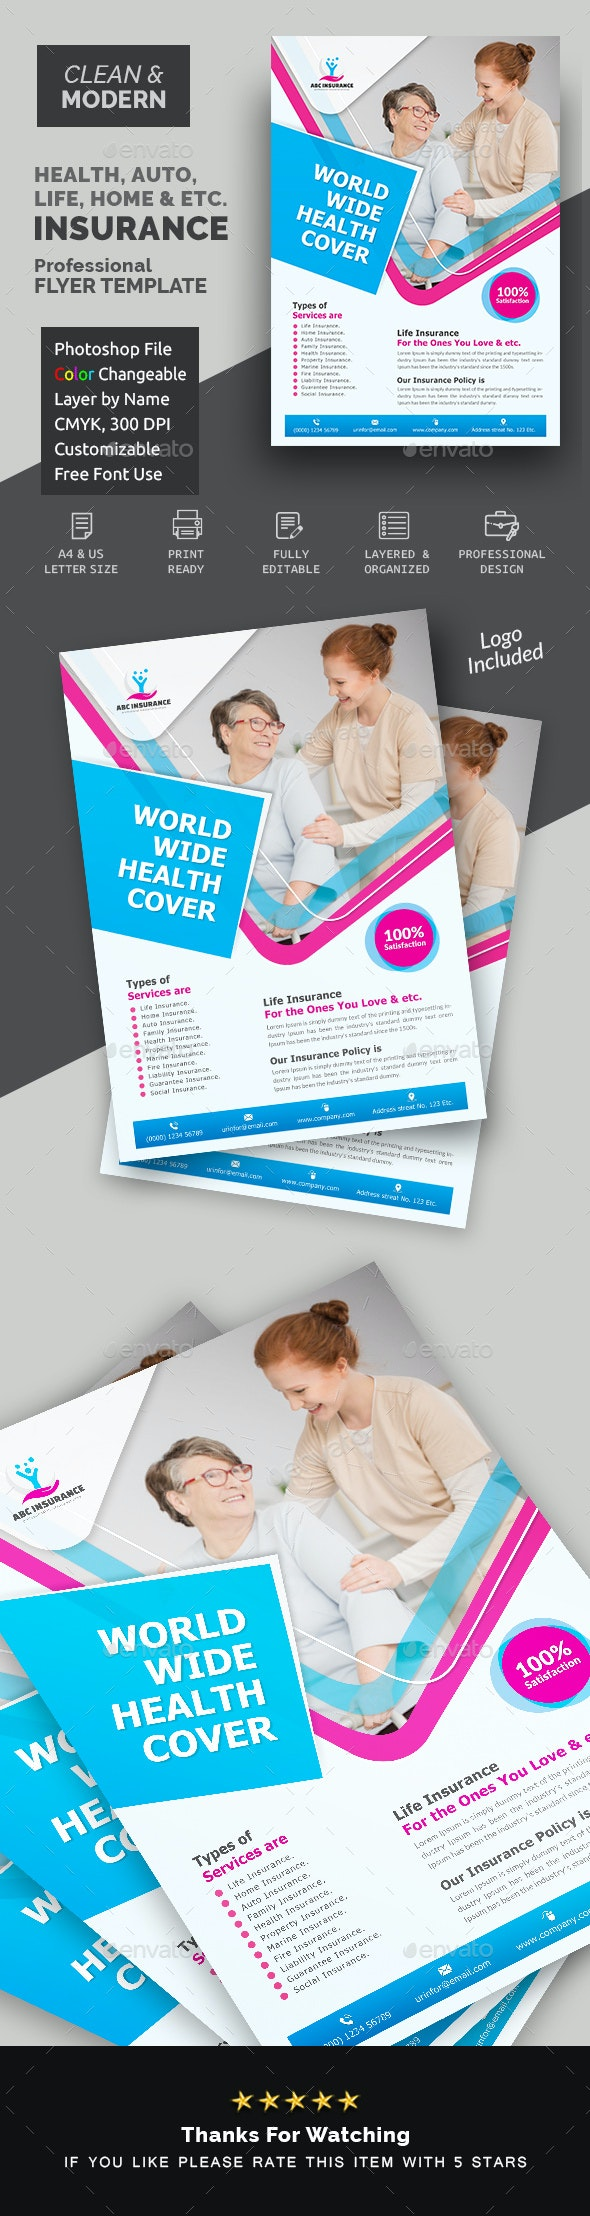 Health Care Insurance Flyer - Corporate Flyers